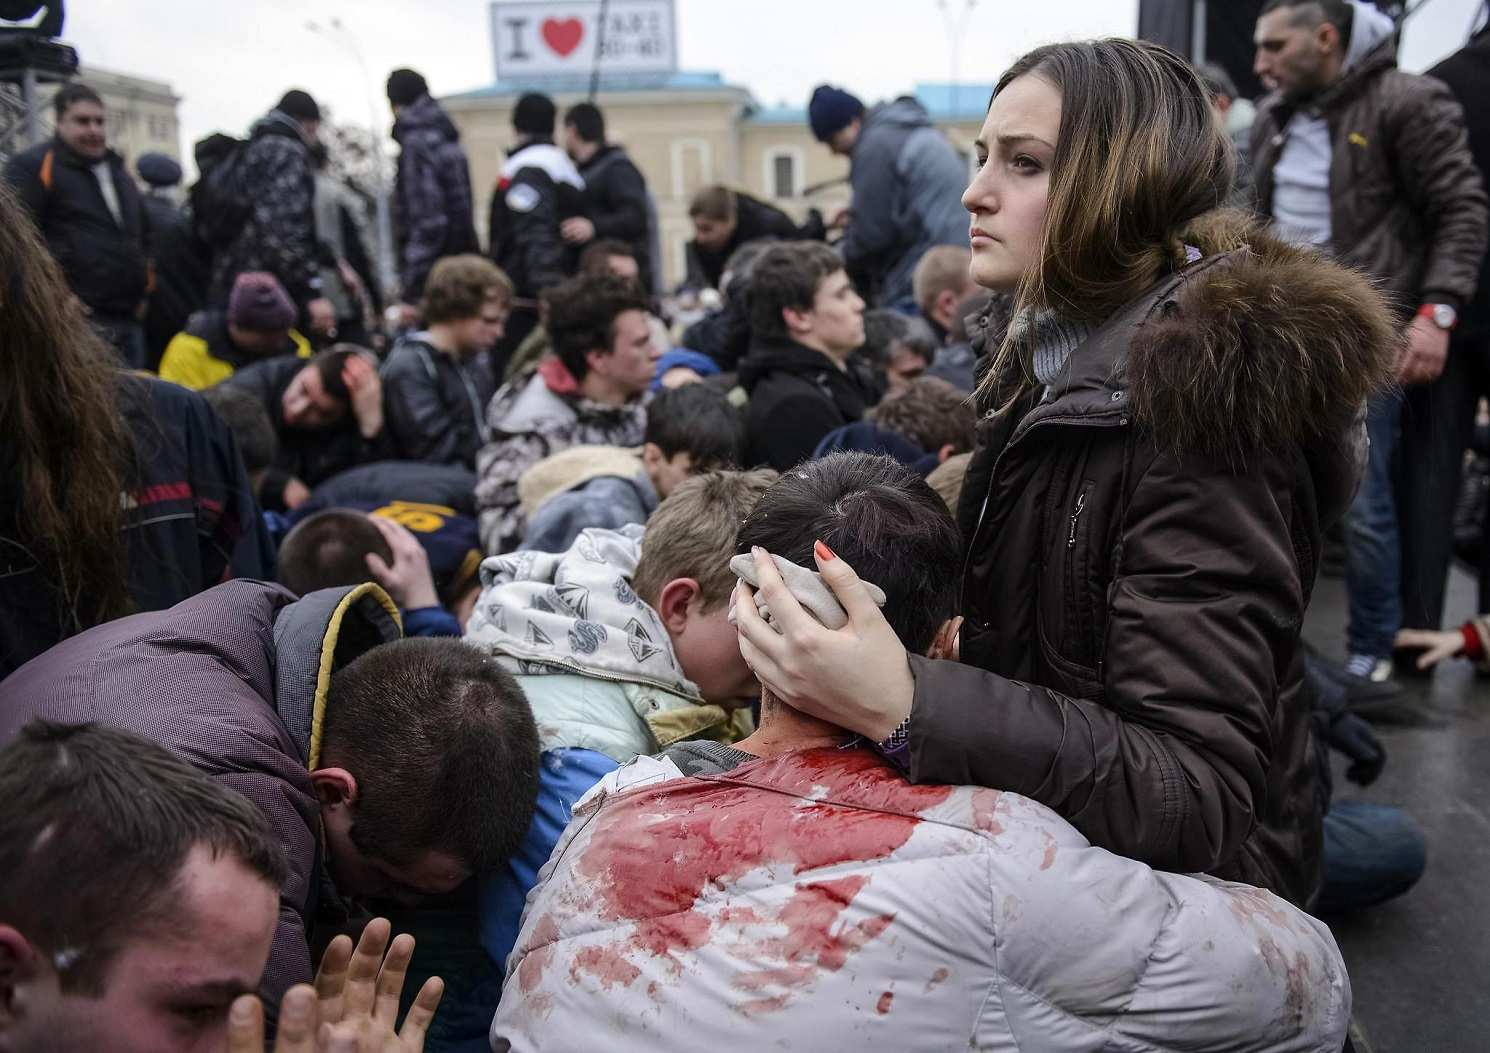 Wounded supporters of Ukraine's new government sit on the ground, in an area protected by the police, after clashes with pro-Russian protesters in central Kharkiv March 1, 2014. Pro-Russia activists clashed with supporters of the new Ukrainian government in the eastern Ukrainian city of Kharkiv on Saturday and tried to seize the regional governor's headquarters, Interfax news agency said.   REUTERS/Stringer  (UKRAINE - Tags: POLITICS CIVIL UNREST TPX IMAGES OF THE DAY)